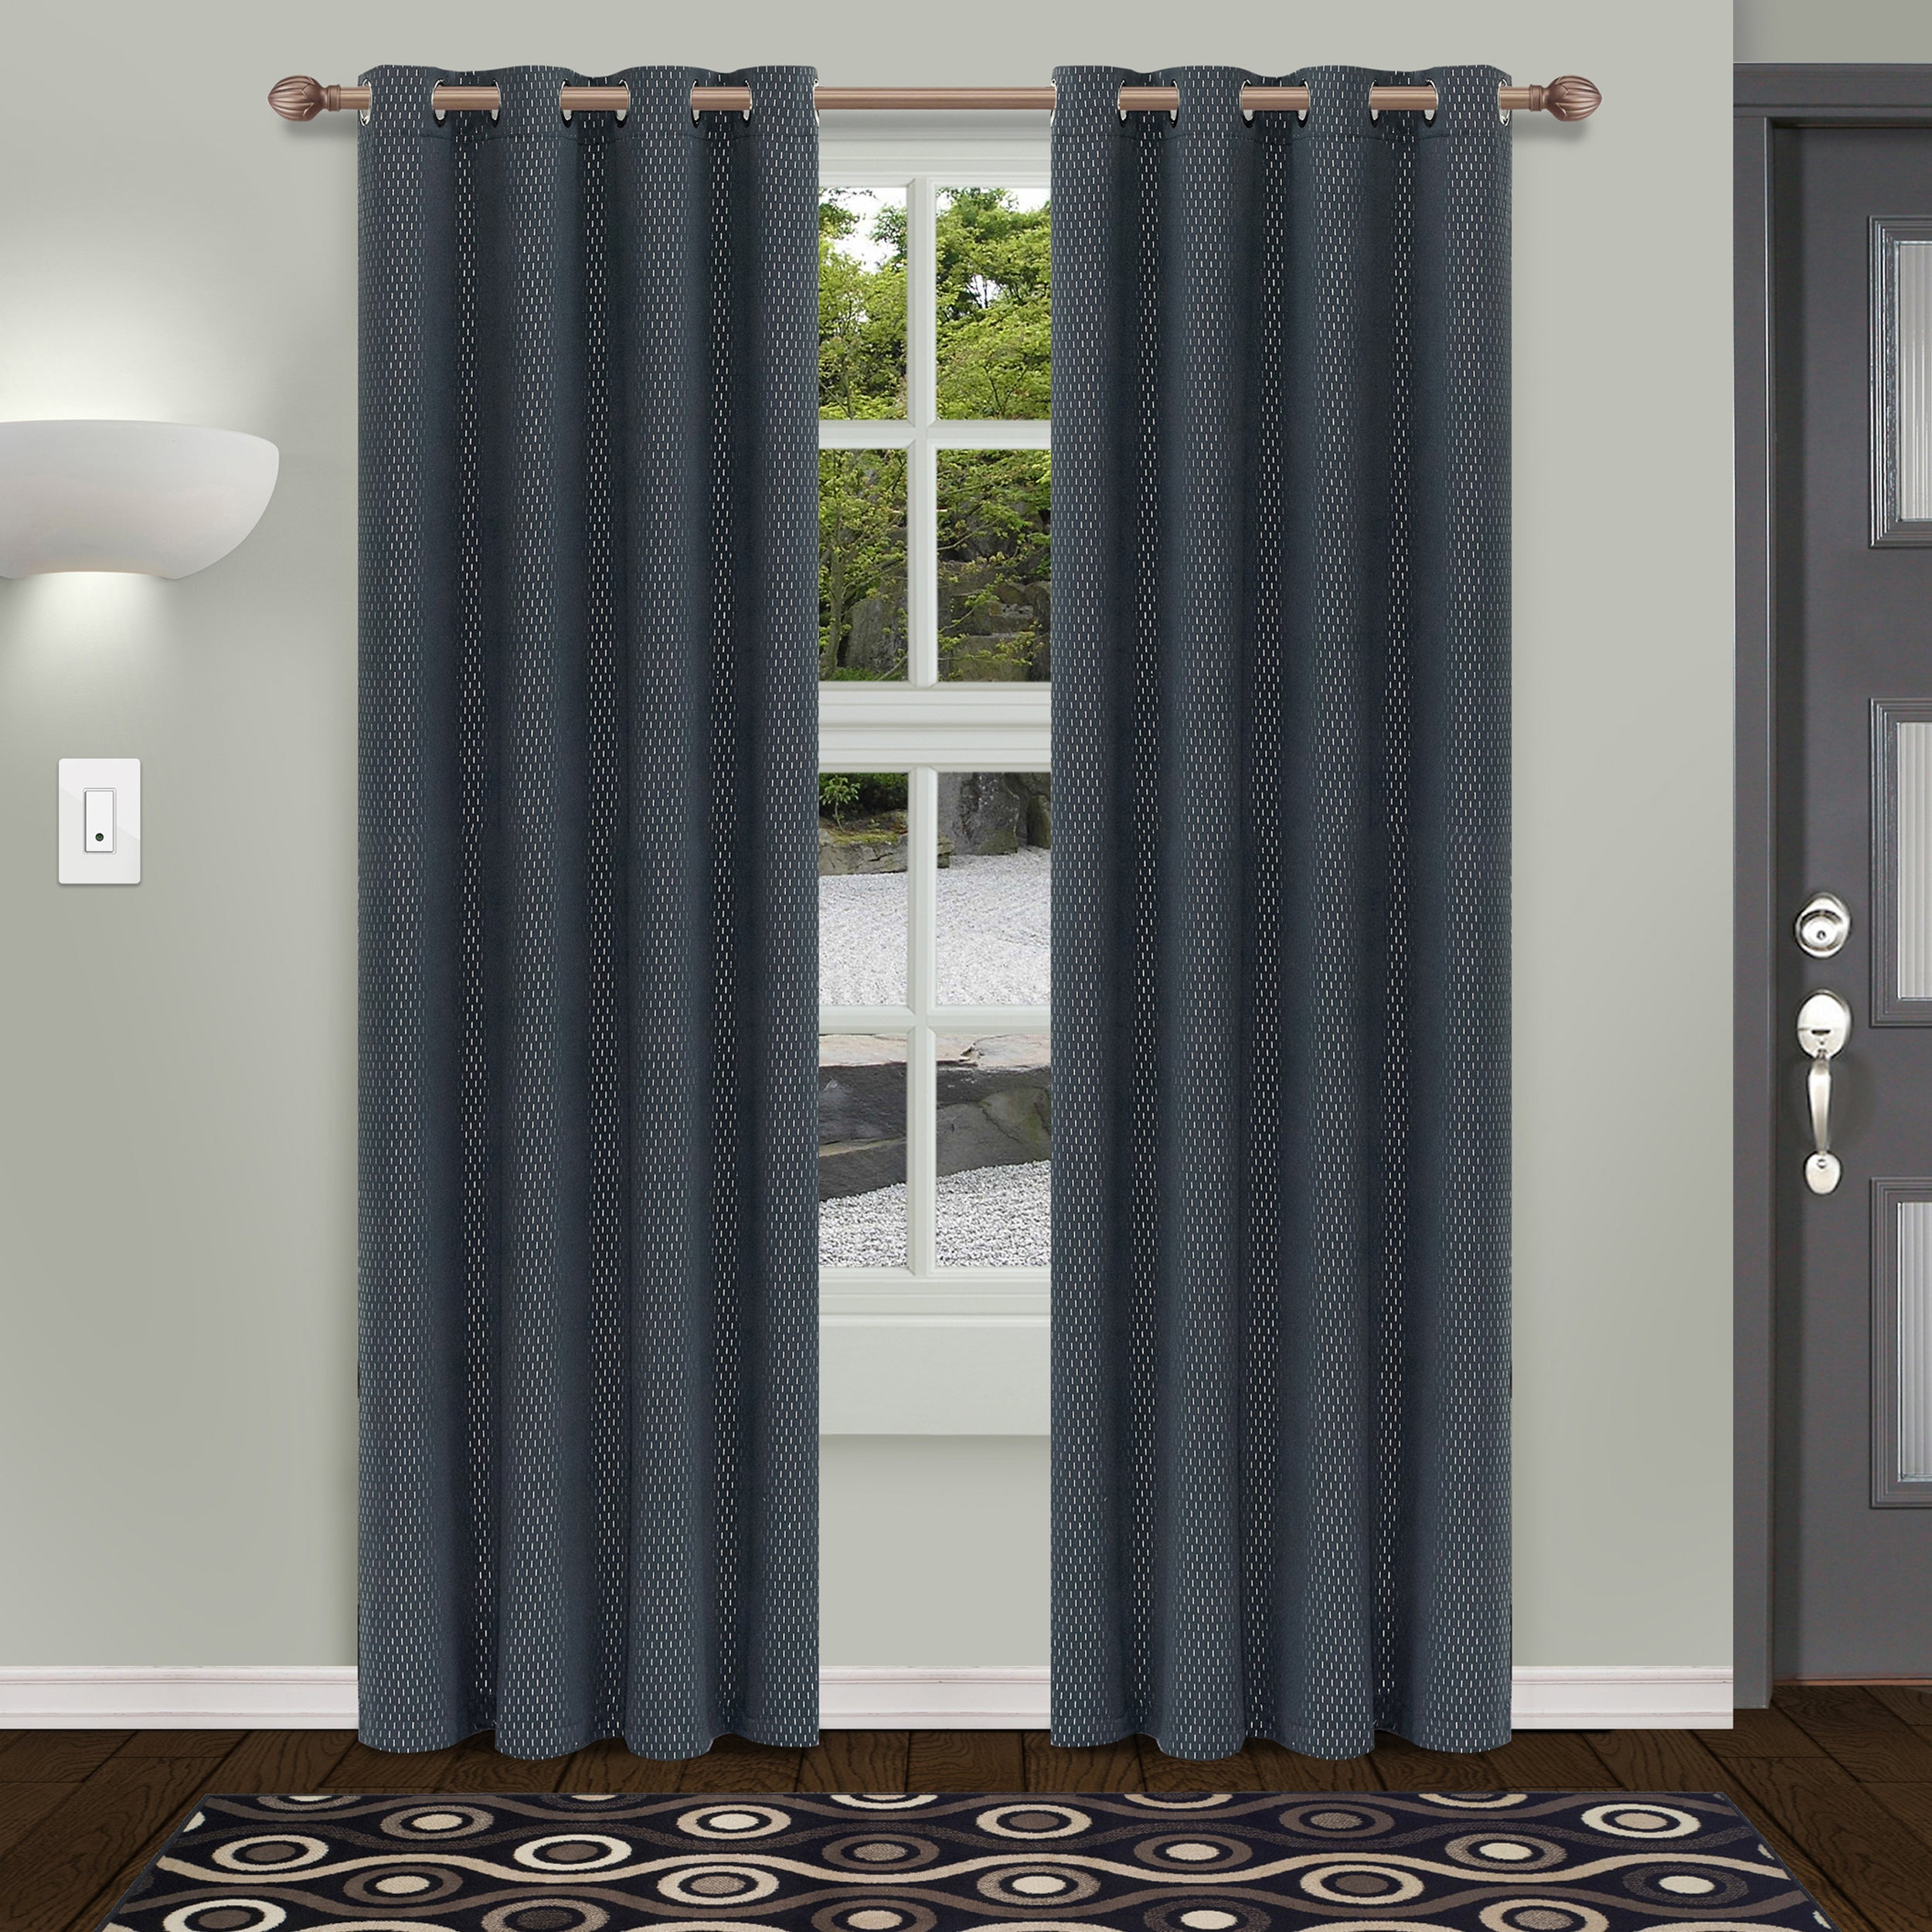 grommet curtain chocolate elements grey wavy with in kitchen home dp grommets embroidered panel wide amazon extra leaves window com sheer drapes x